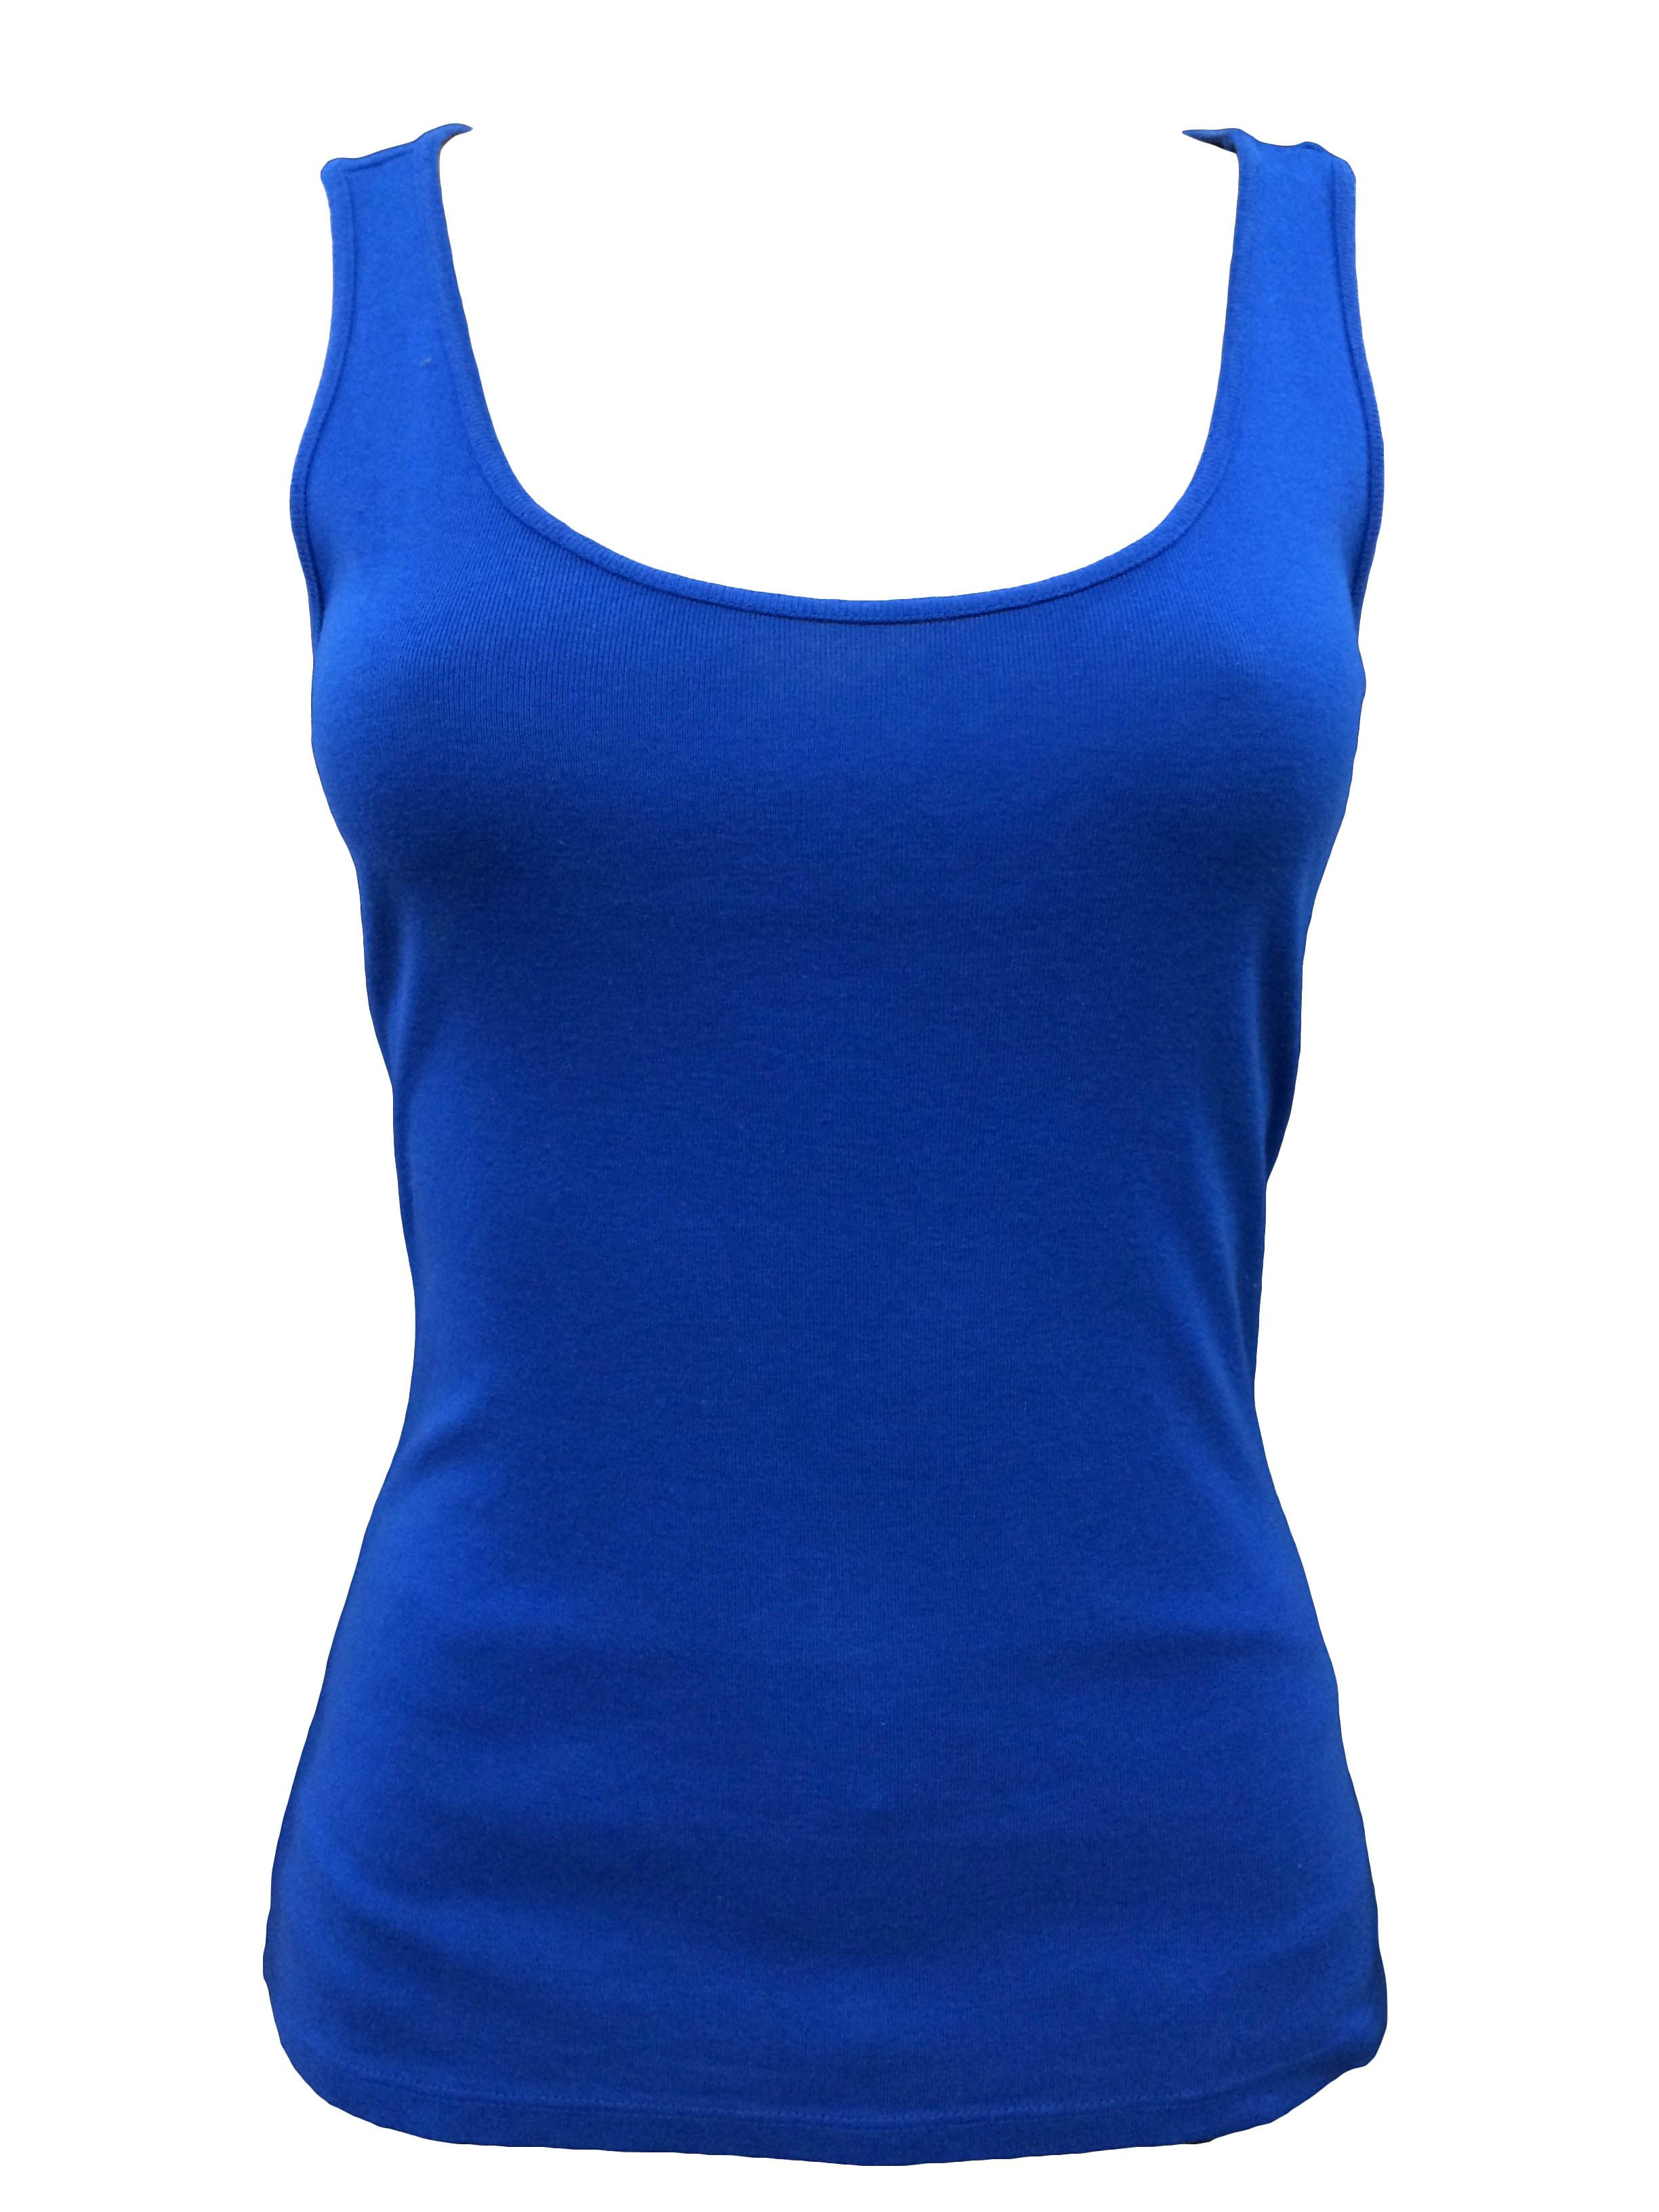 Blue Tank Top. $19.95 http://www.davidclineonline.com/tank-tops-blowout/blue-tank-top